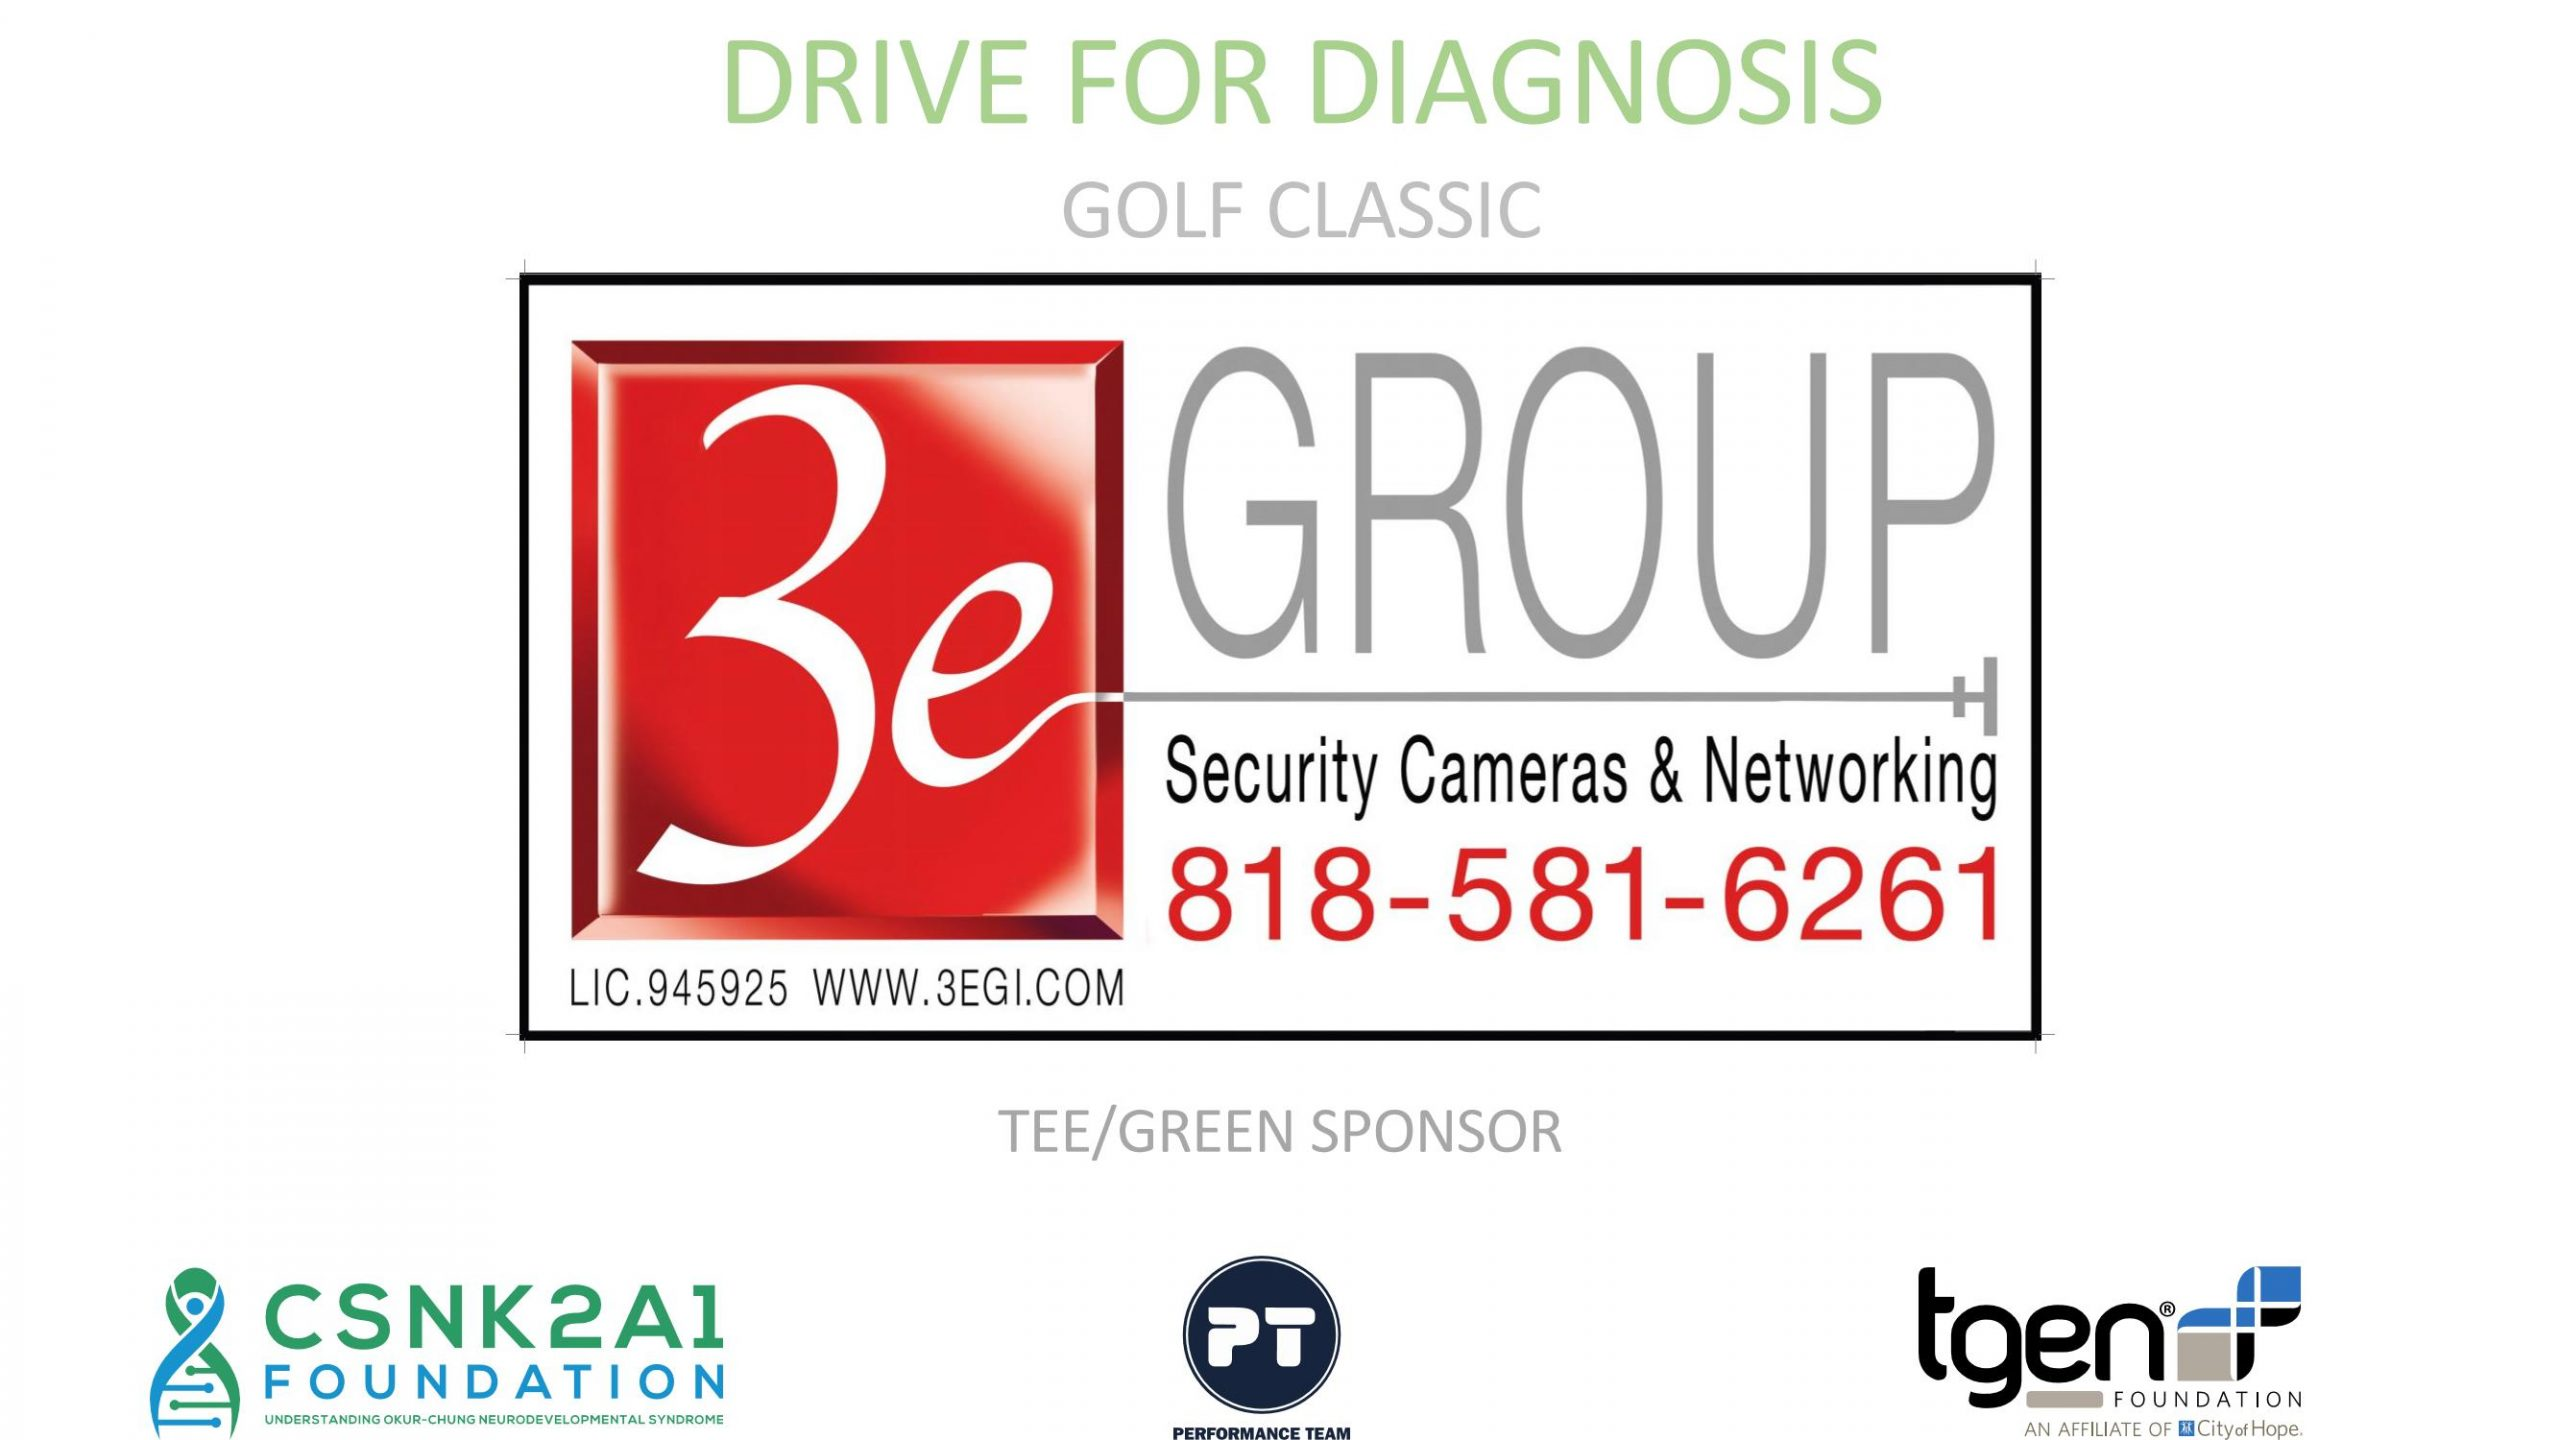 Tee/Green Sponsor - 3e Group